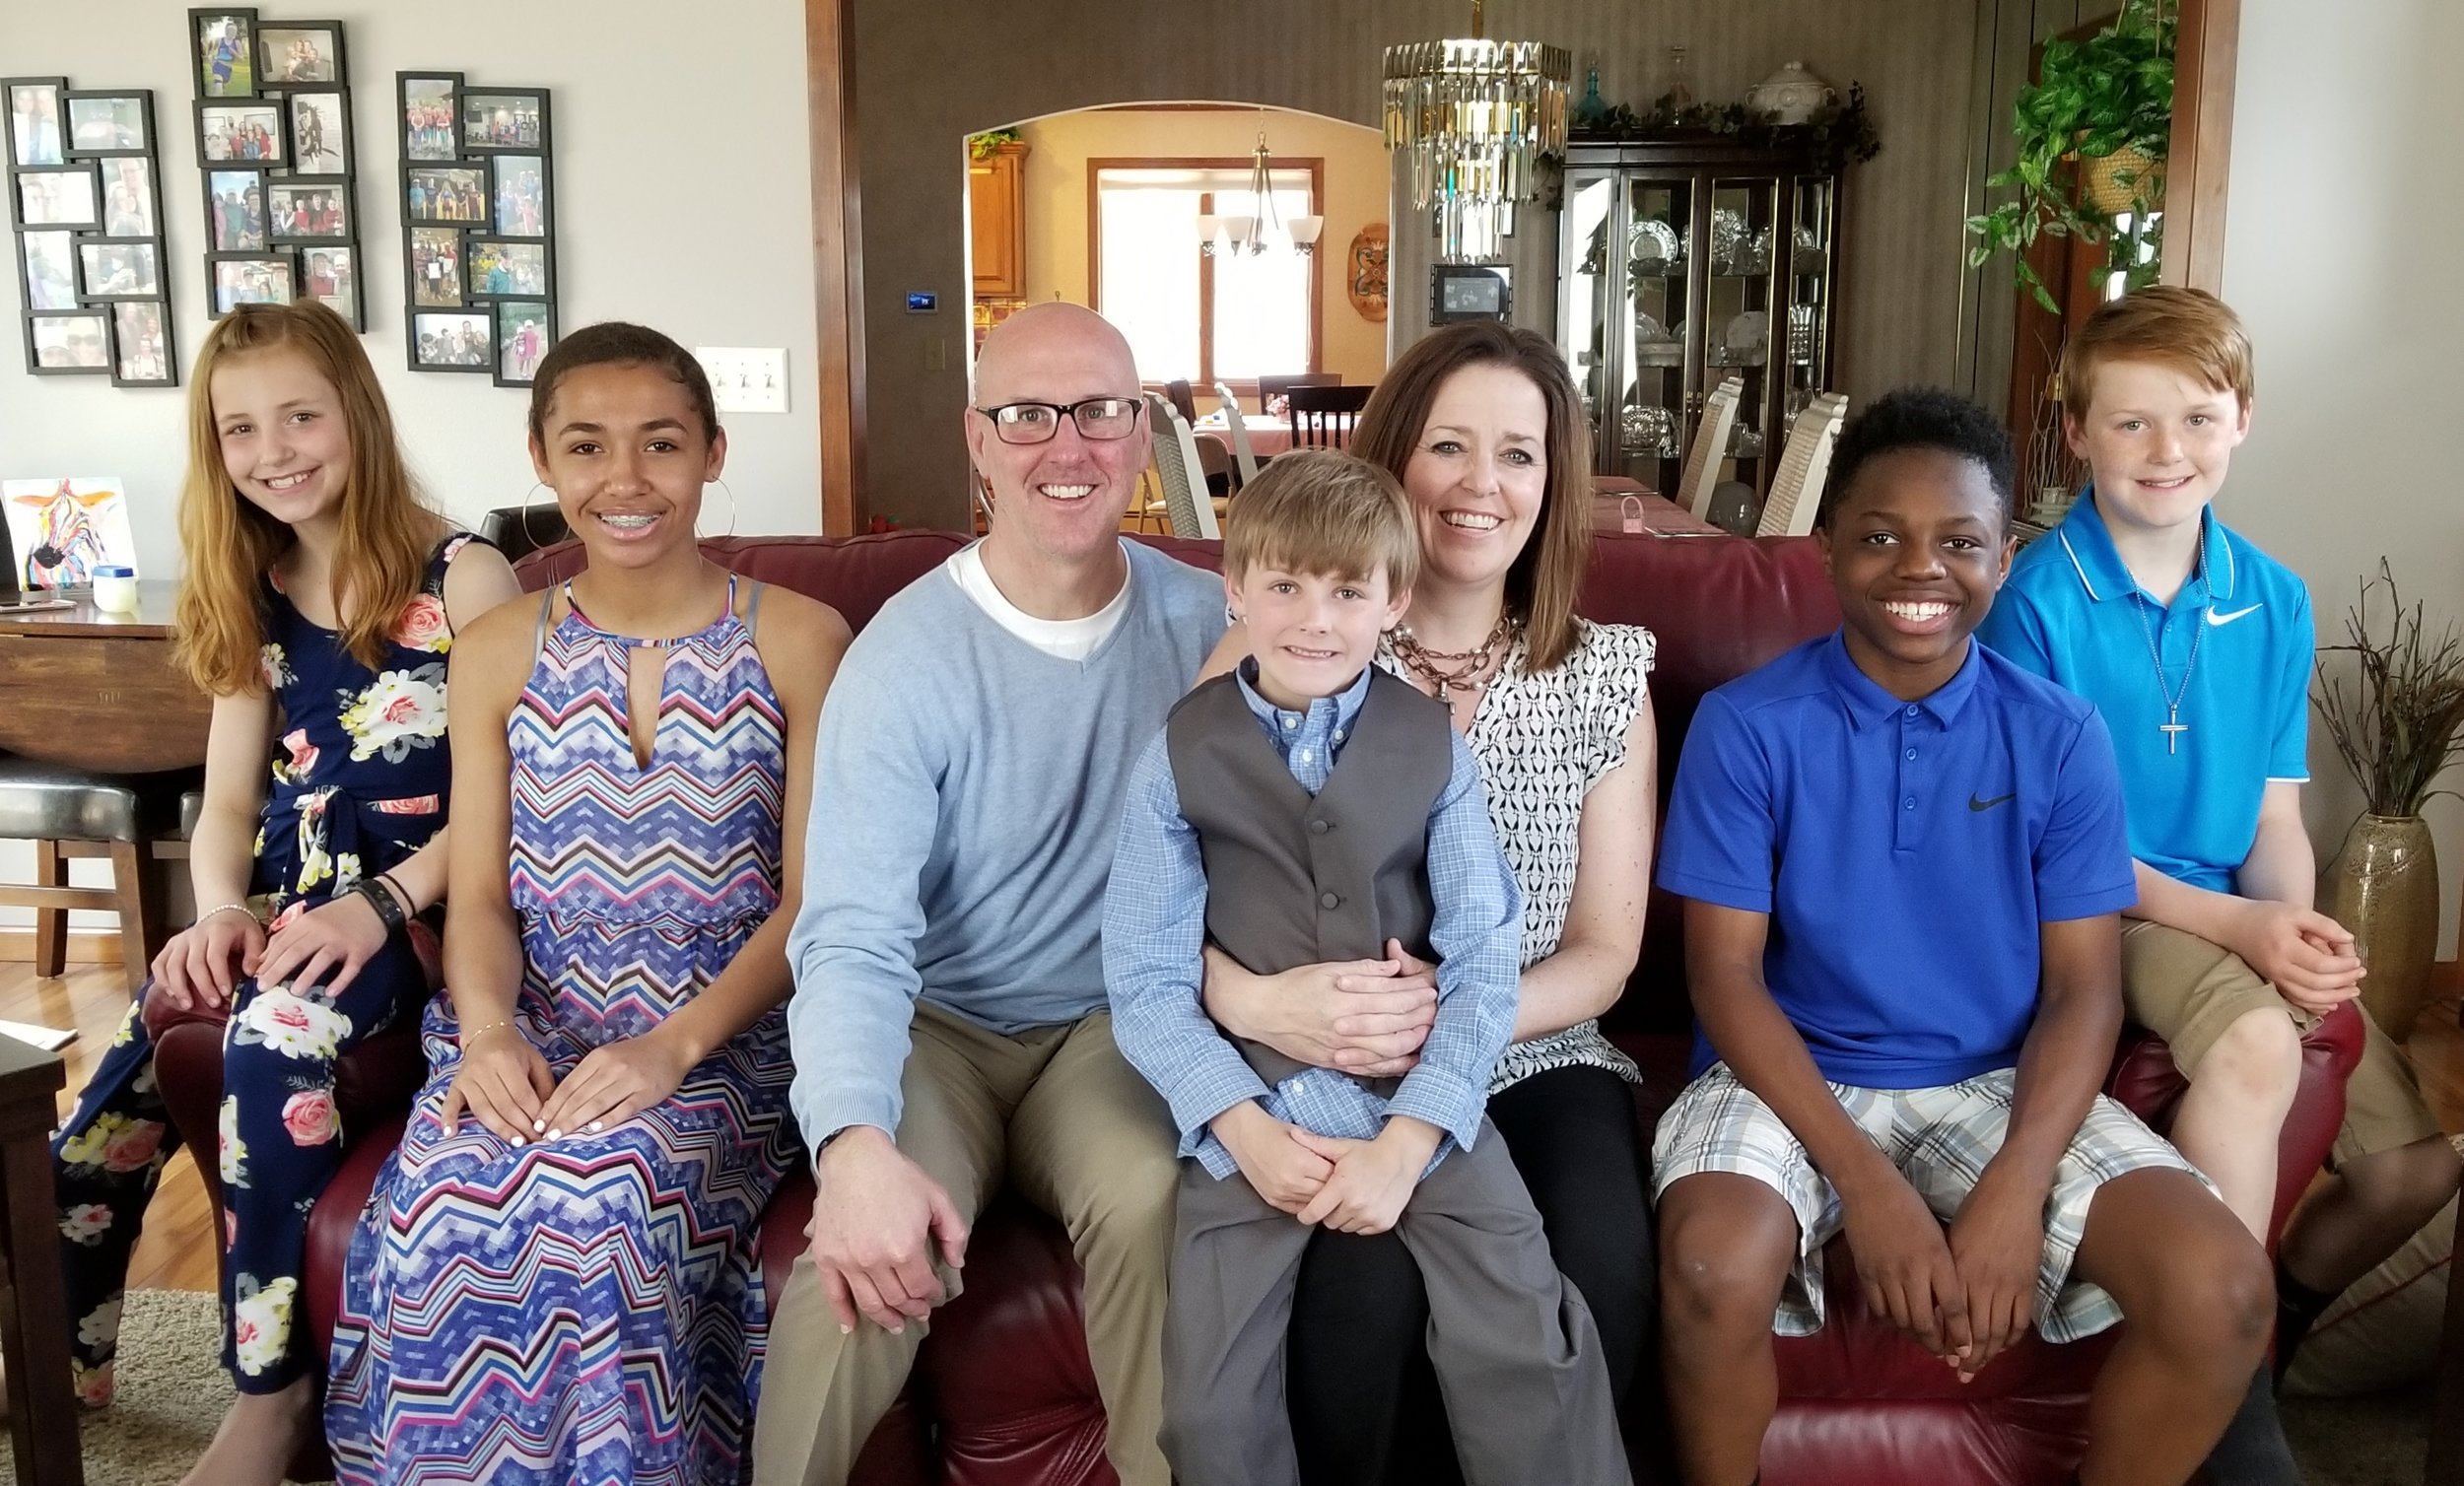 Mrs. Louisa Biteler, pictured with her family above, will serve as the K-8 Suzuki violin instructor and orchestra director at Sioux Falls Lutheran School beginning in the fall of 2019.